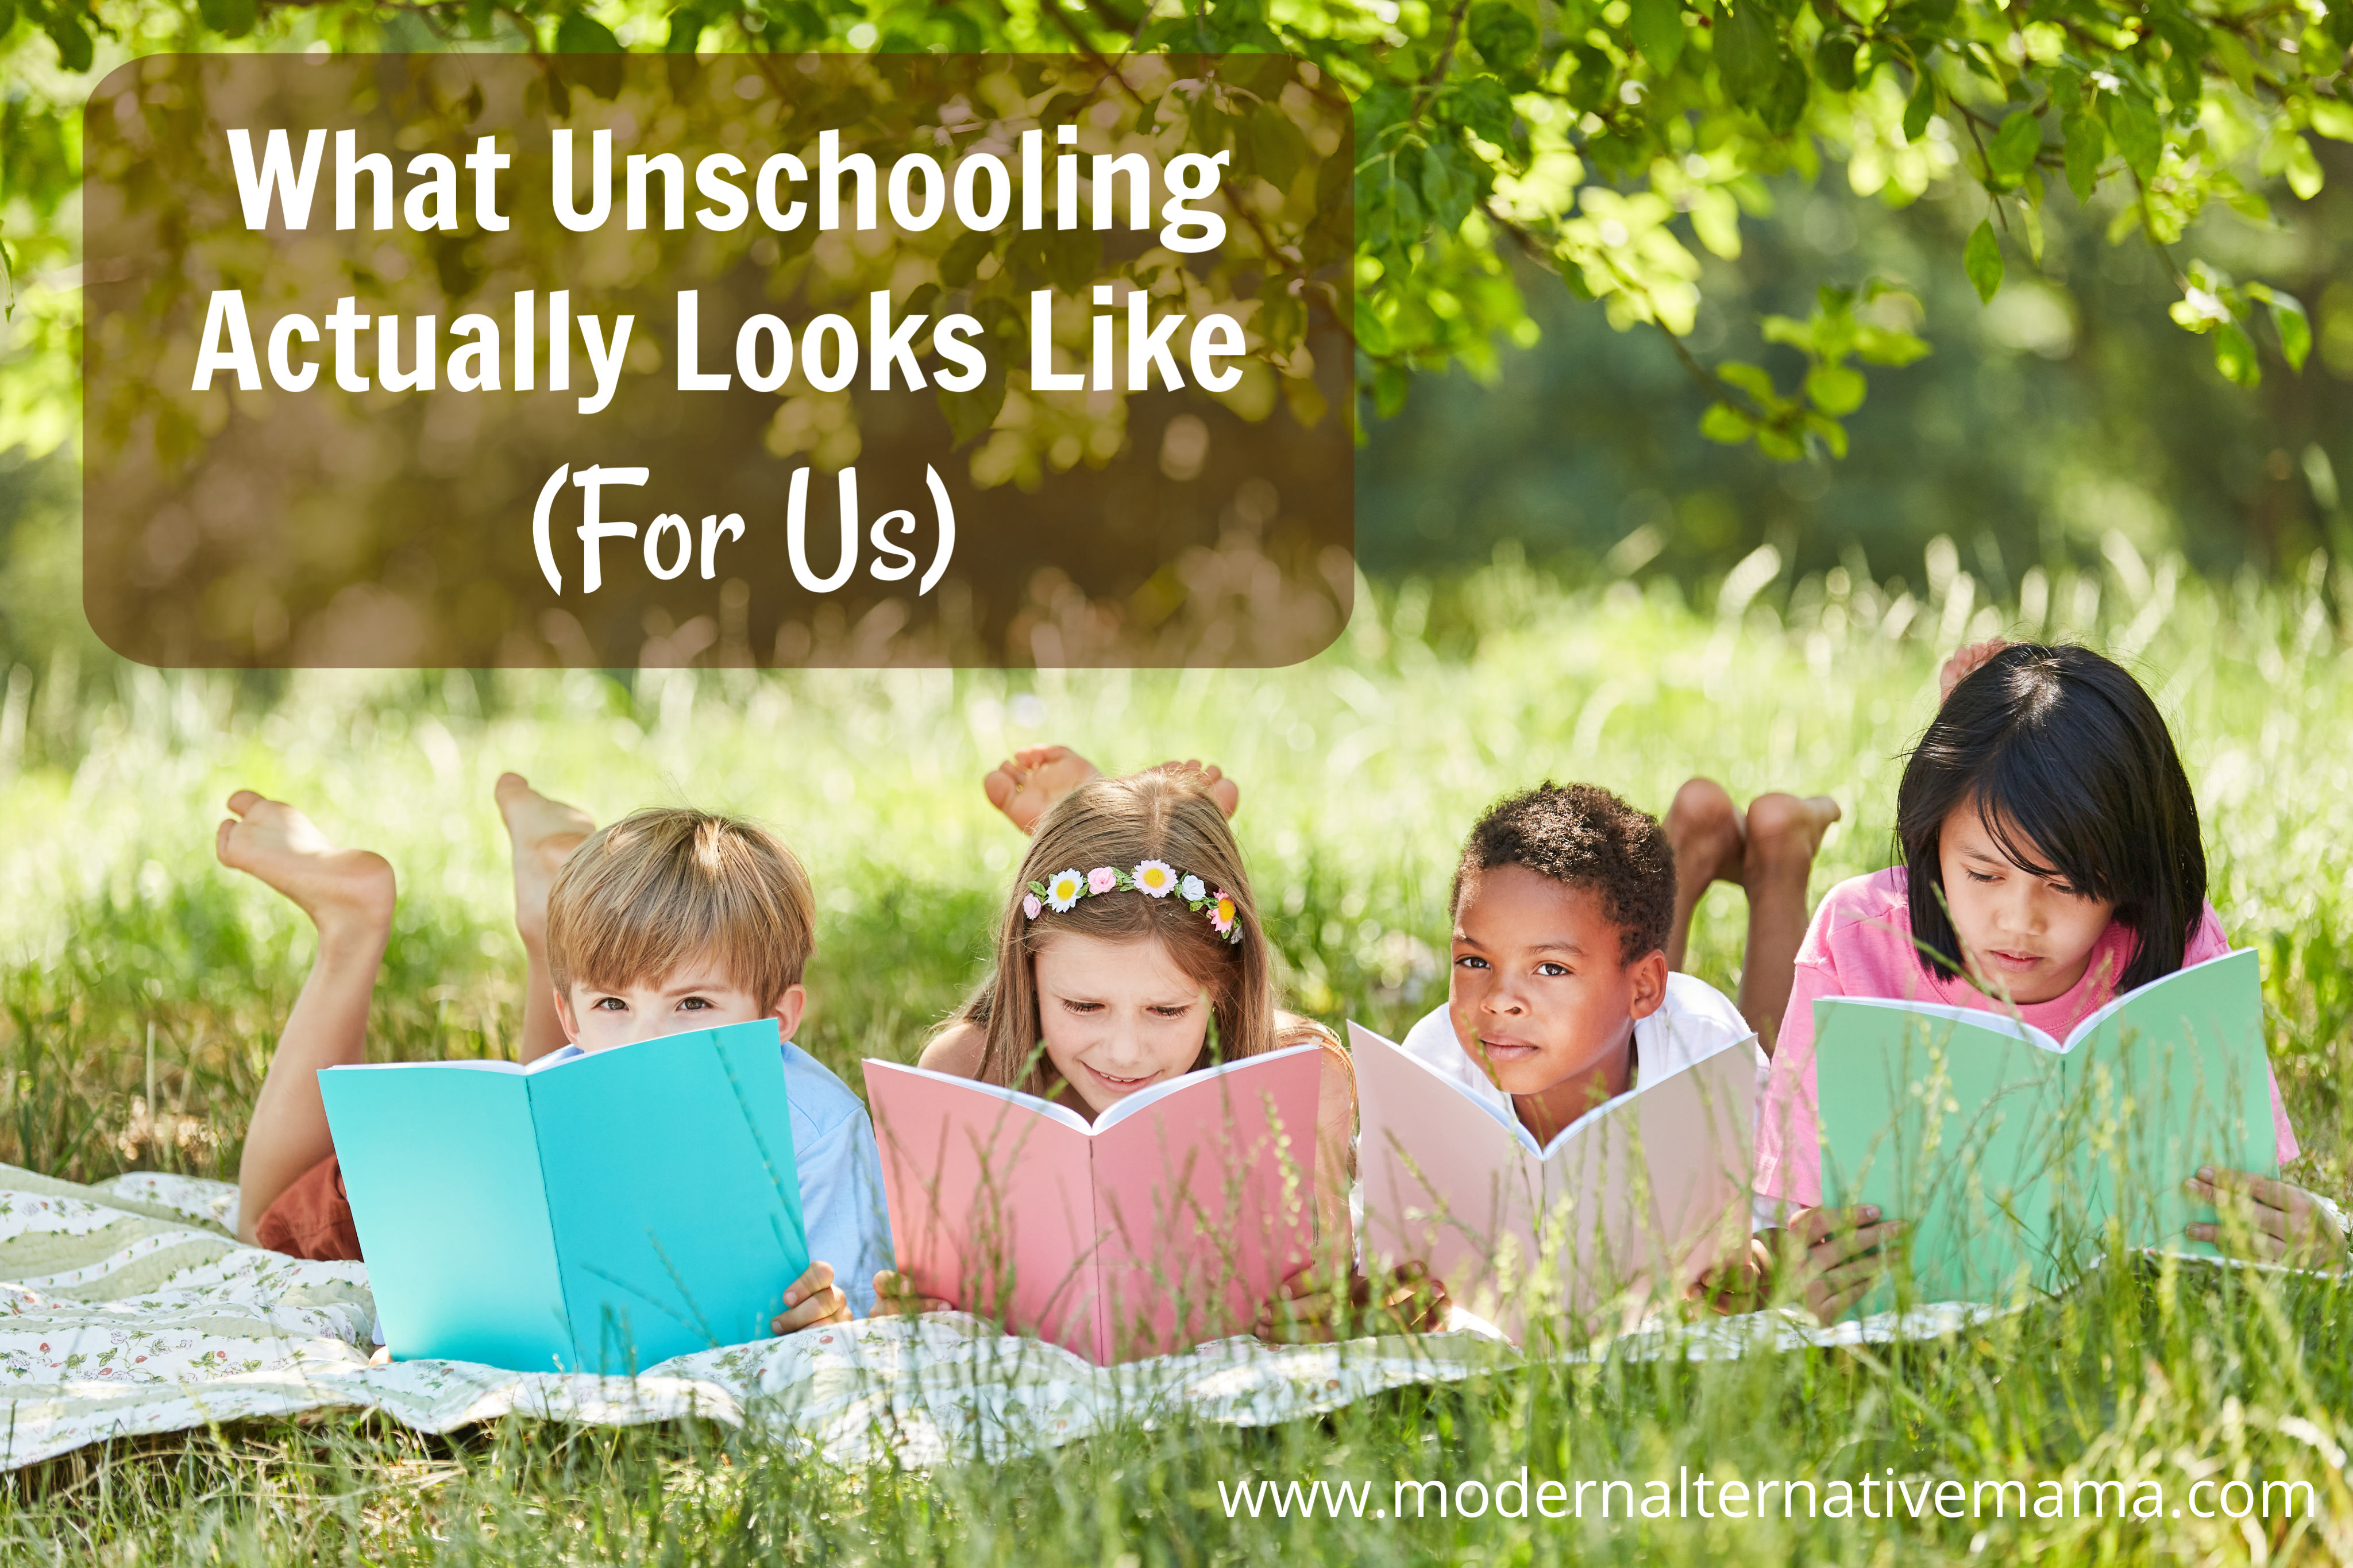 What Unschooling Actually Looks Like (For Us) - Modern Alternative